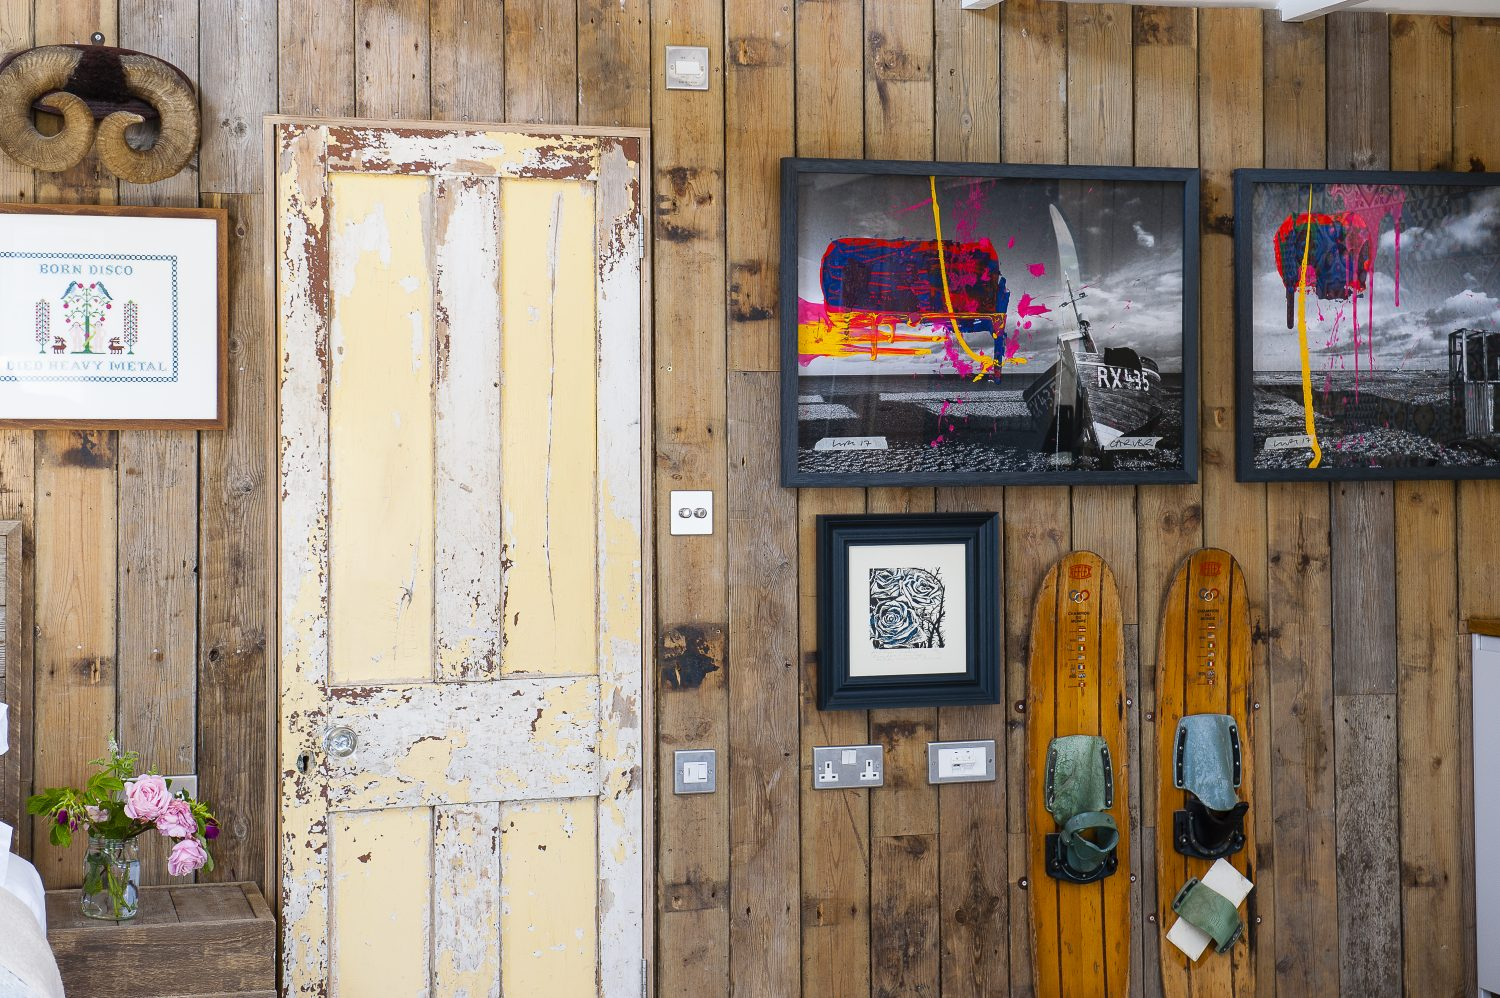 More of John's artworks, made in collaboration with artist Luke Hannam, hang in a downstairs bedroom above a pair of vintage water skis